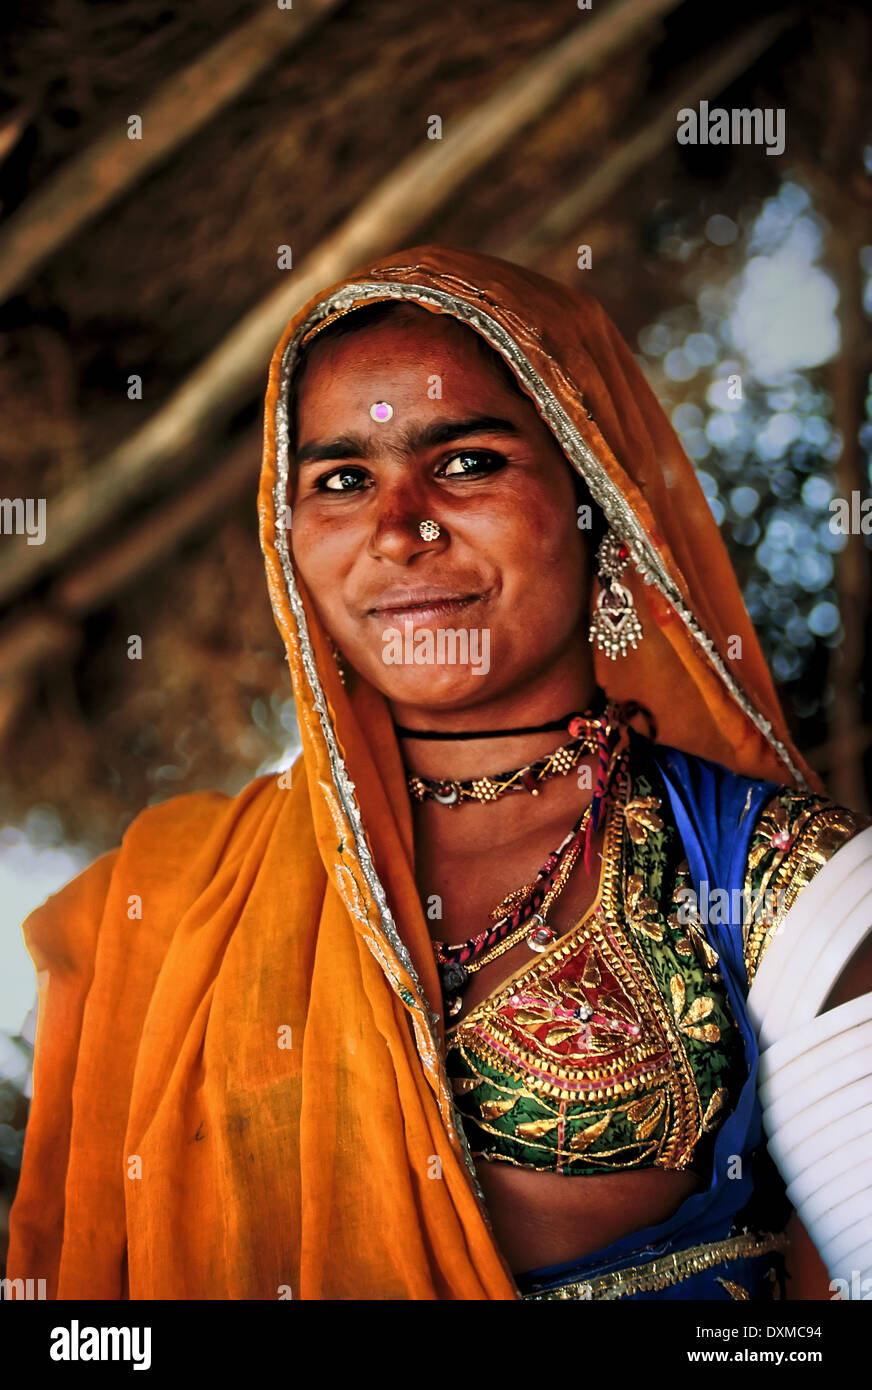 Indian woman wearing a headscarf and jewellery. In a village near Jodhpur, India. Digitally Manipulated Image. Stylised by sharp - Stock Image